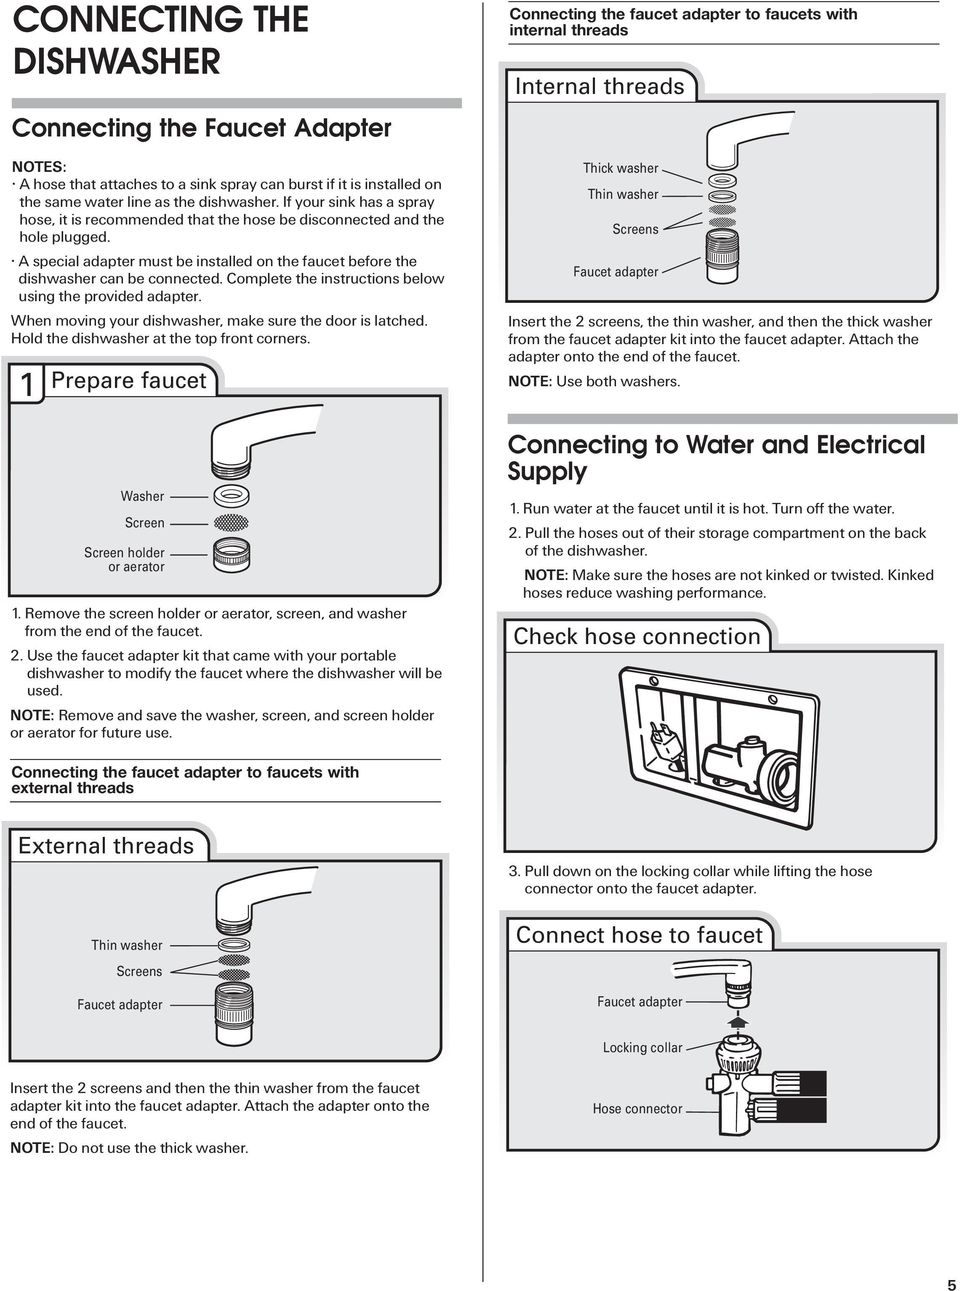 A special adapter must be installed on the faucet before the dishwasher can be connected. Complete the instructions below using the provided adapter.